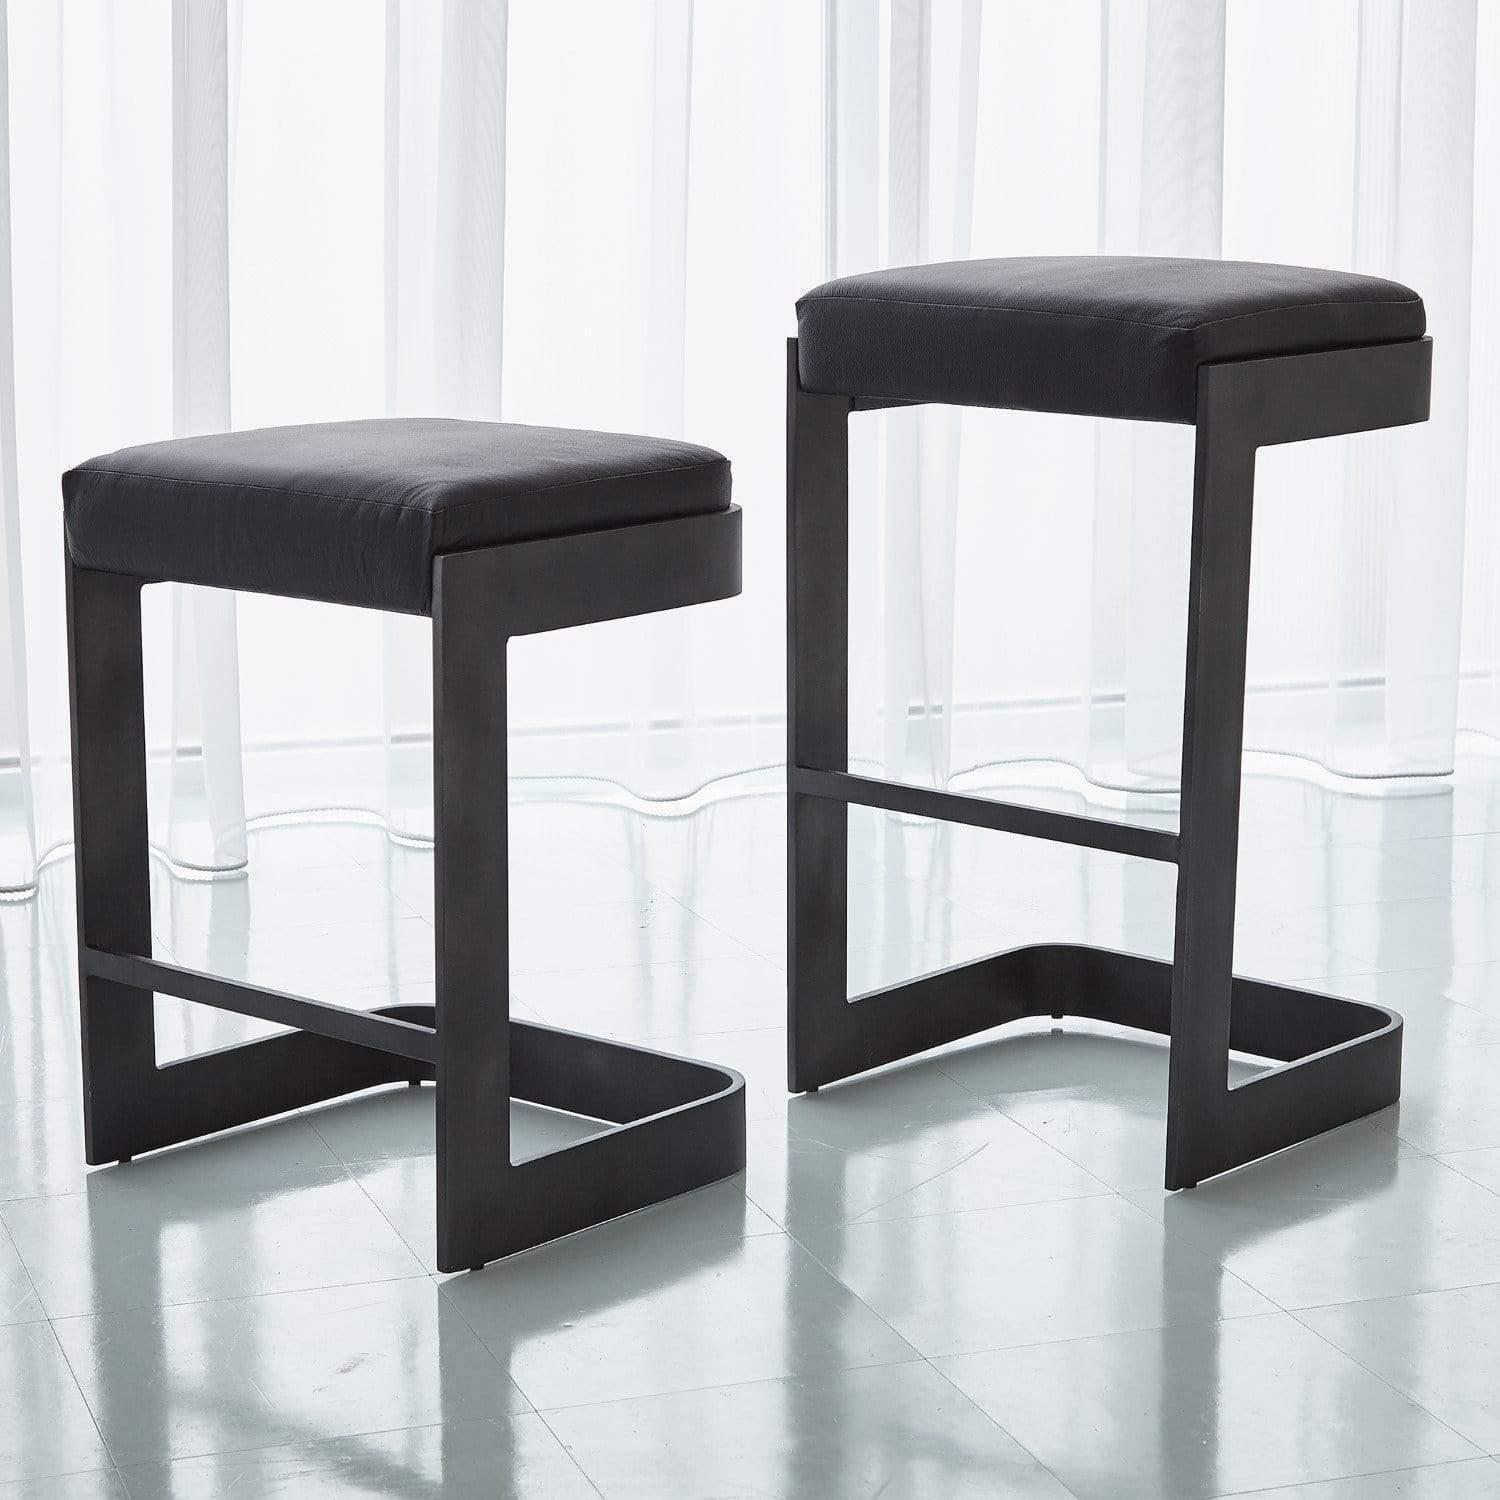 Global Views Global Views Regan High Bar Stool with Black Leather Graphite 7.90825